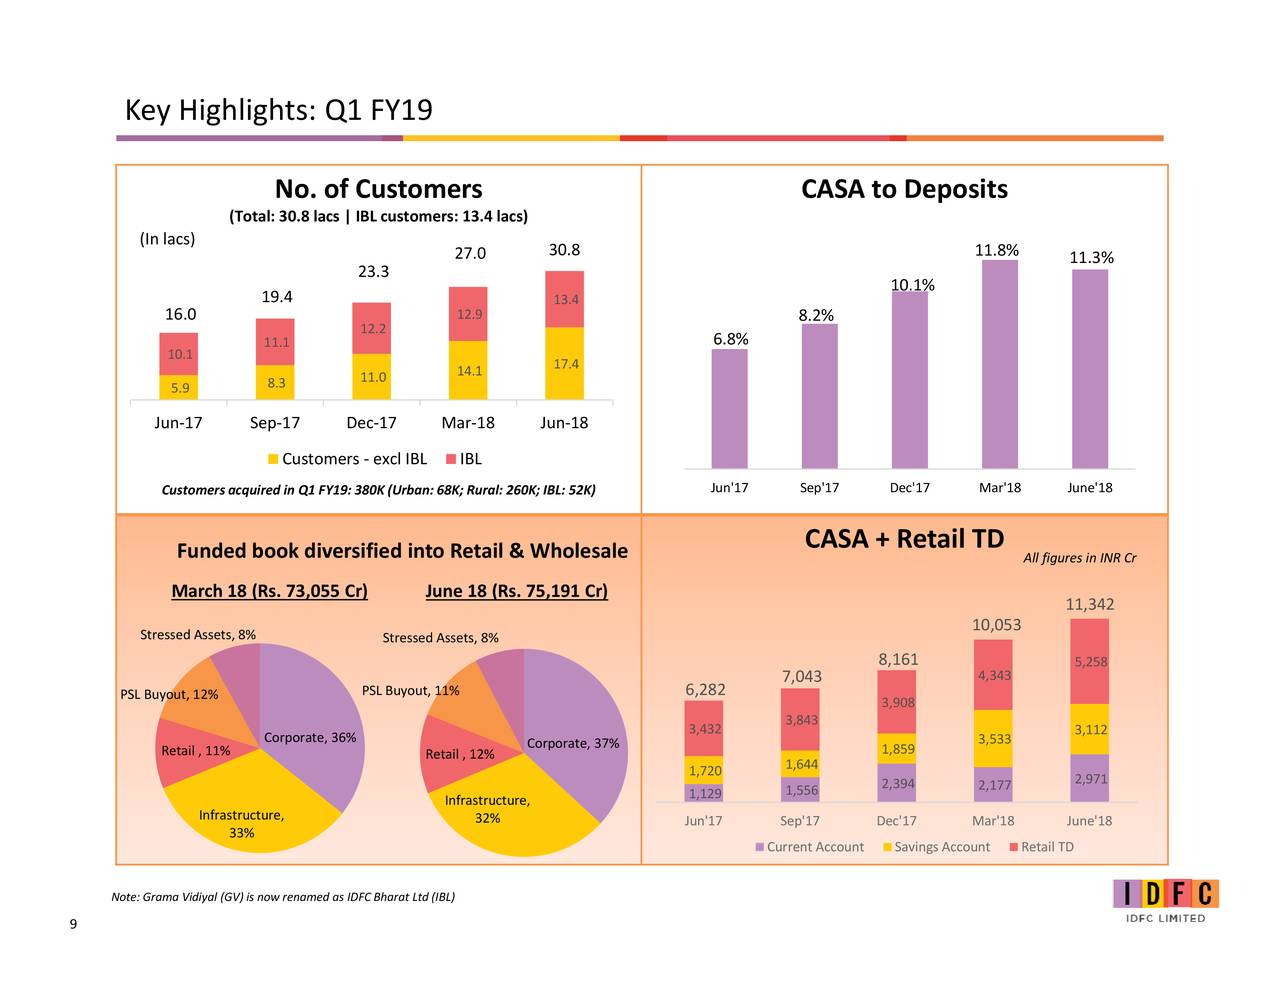 casa deposits analysis The optimisation of interest paid on casa deposits the examination of the effects of non-normality when defining yield enhancement and risk management strategies the specification of stress testing factors for risk management purposes.